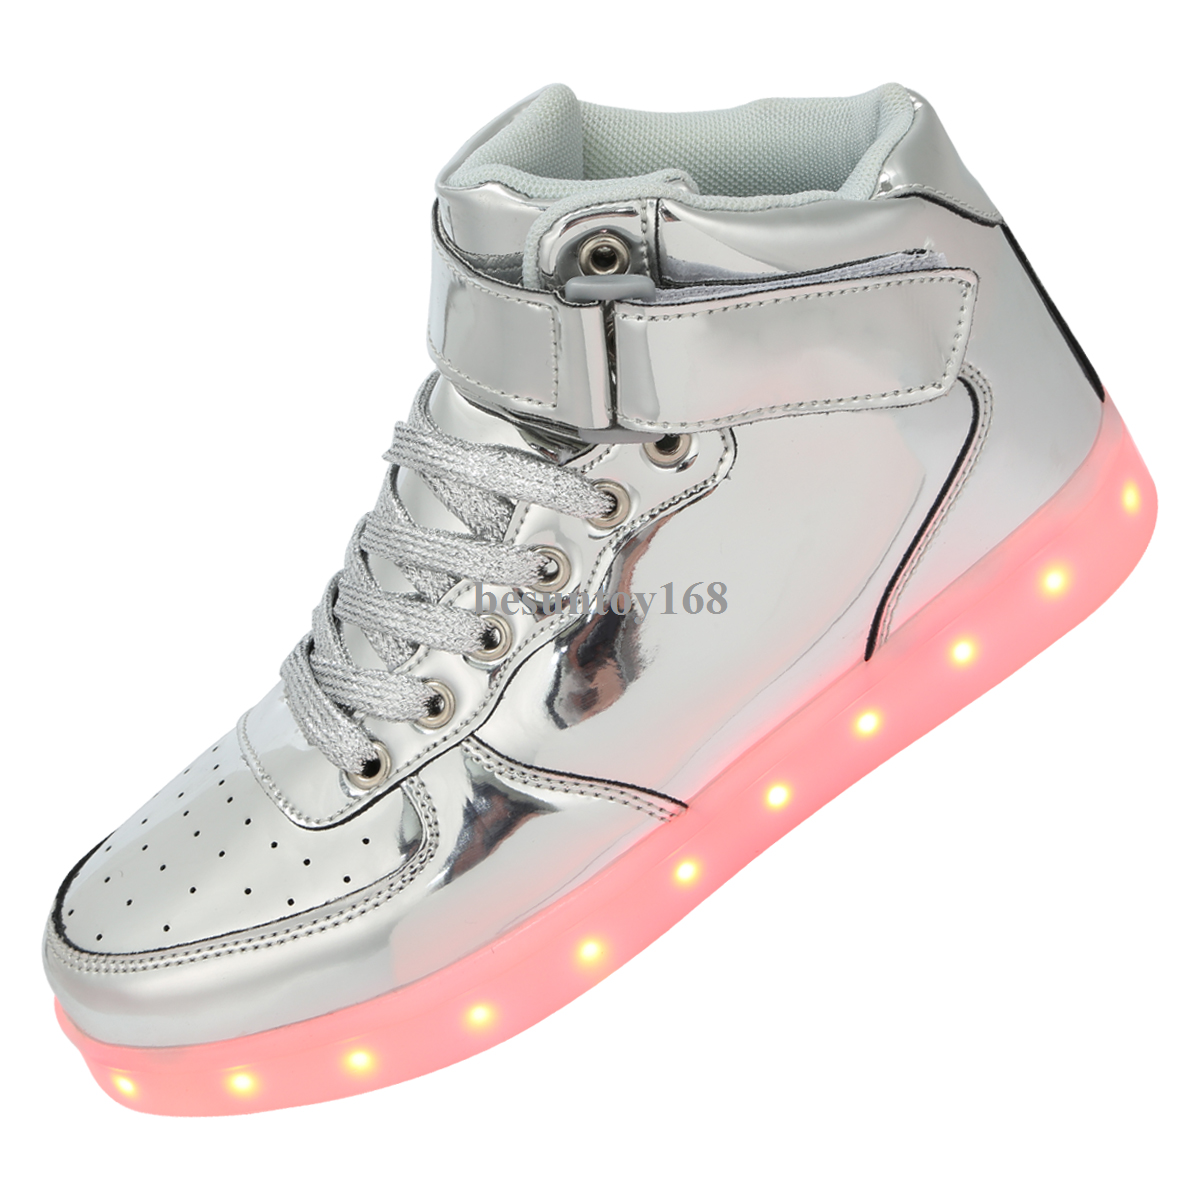 Details About Shinynight Usb Charging 11 Colors Led Light Up Shoes Fashion Sneakers Sport Shoe